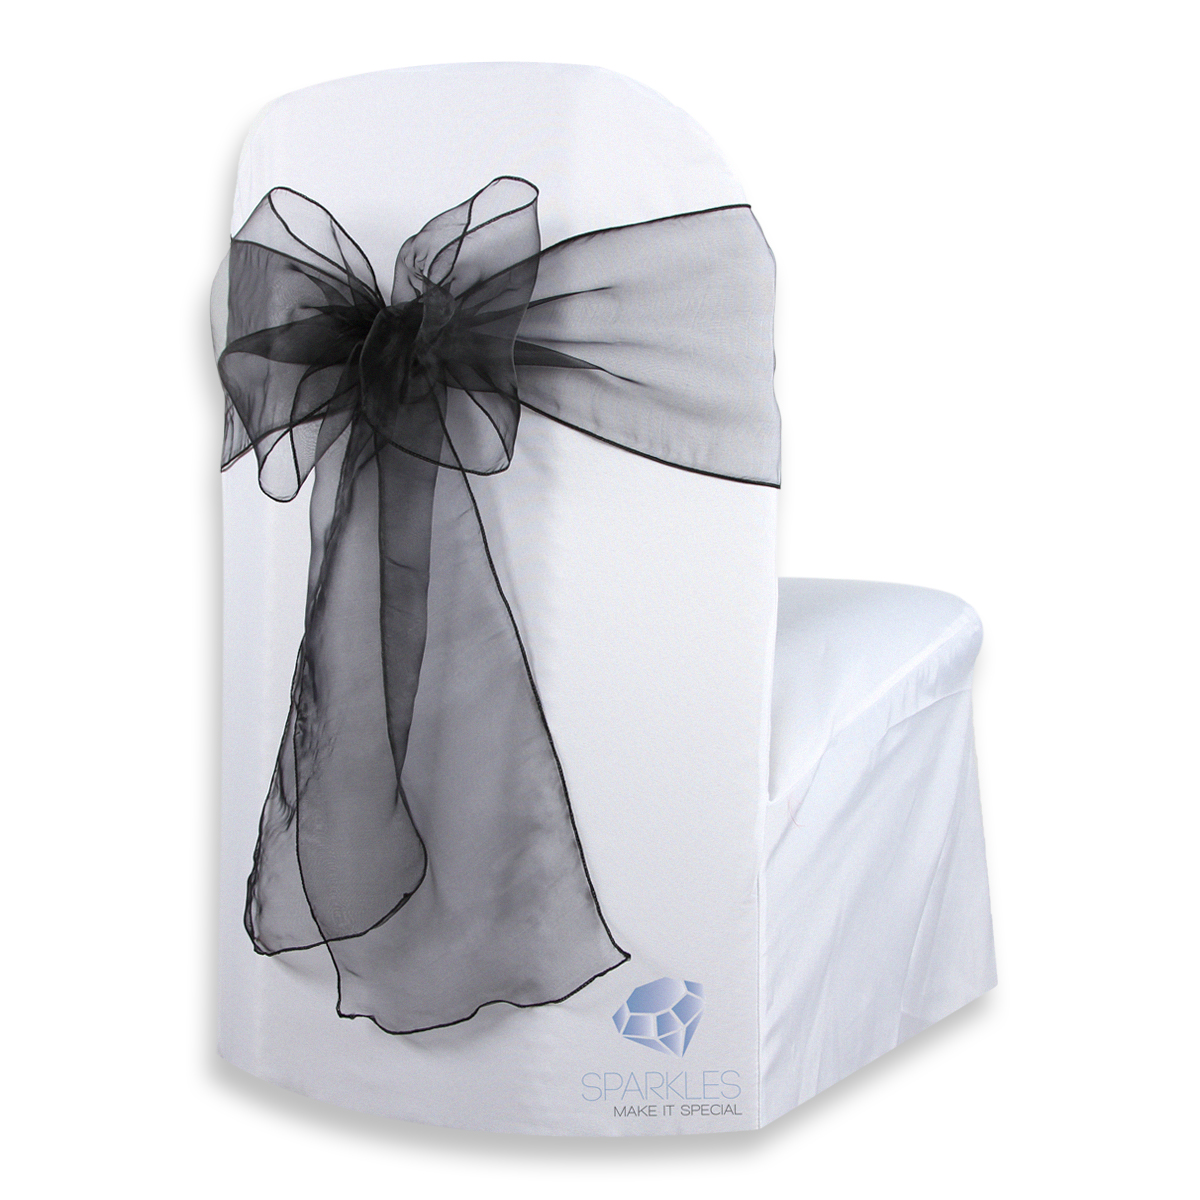 chair covers and bows bridgend kreg jig adirondack plans 100 pcs organza cover bow sash 108 quotx8 quot wedding party